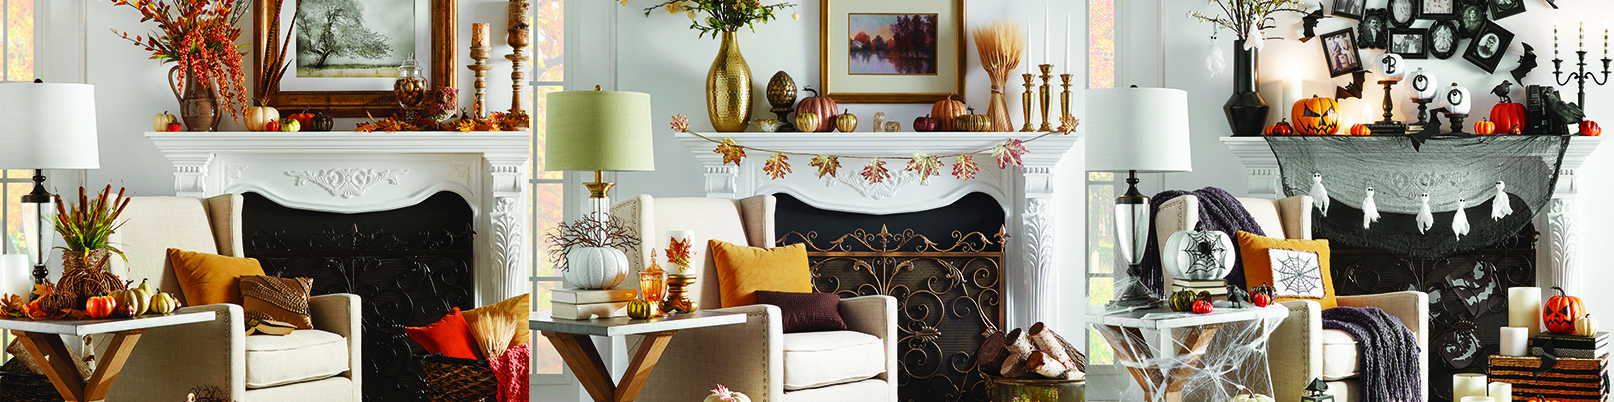 iNSPIRE Q Fall Holiday Mantle Decor